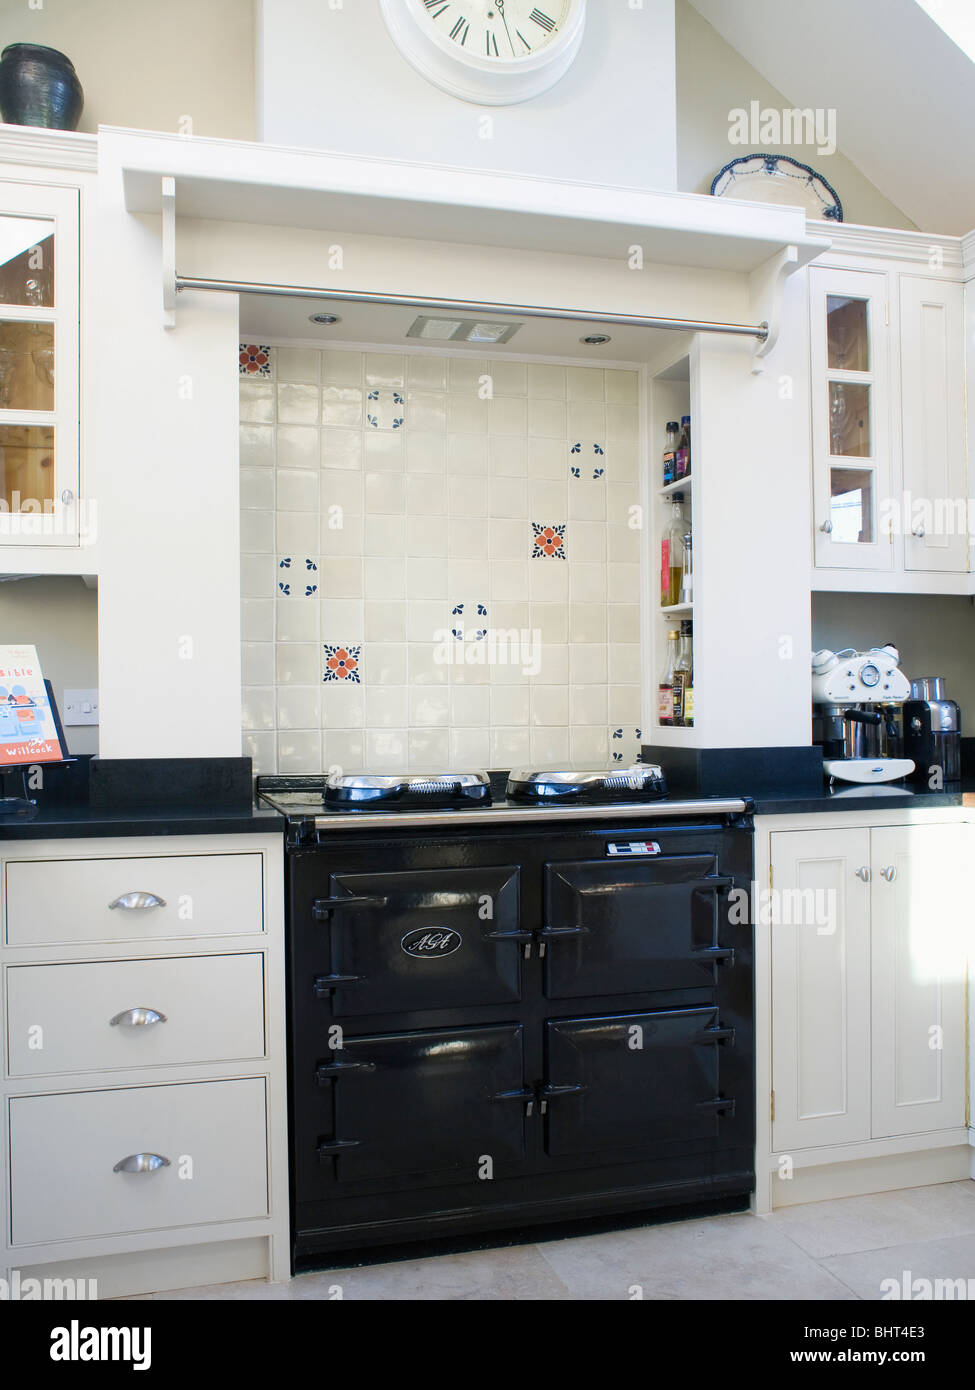 Kitchen Tiled Splashback Black Aga Oven Below Tiled Splash Back In Modern White Kitchen